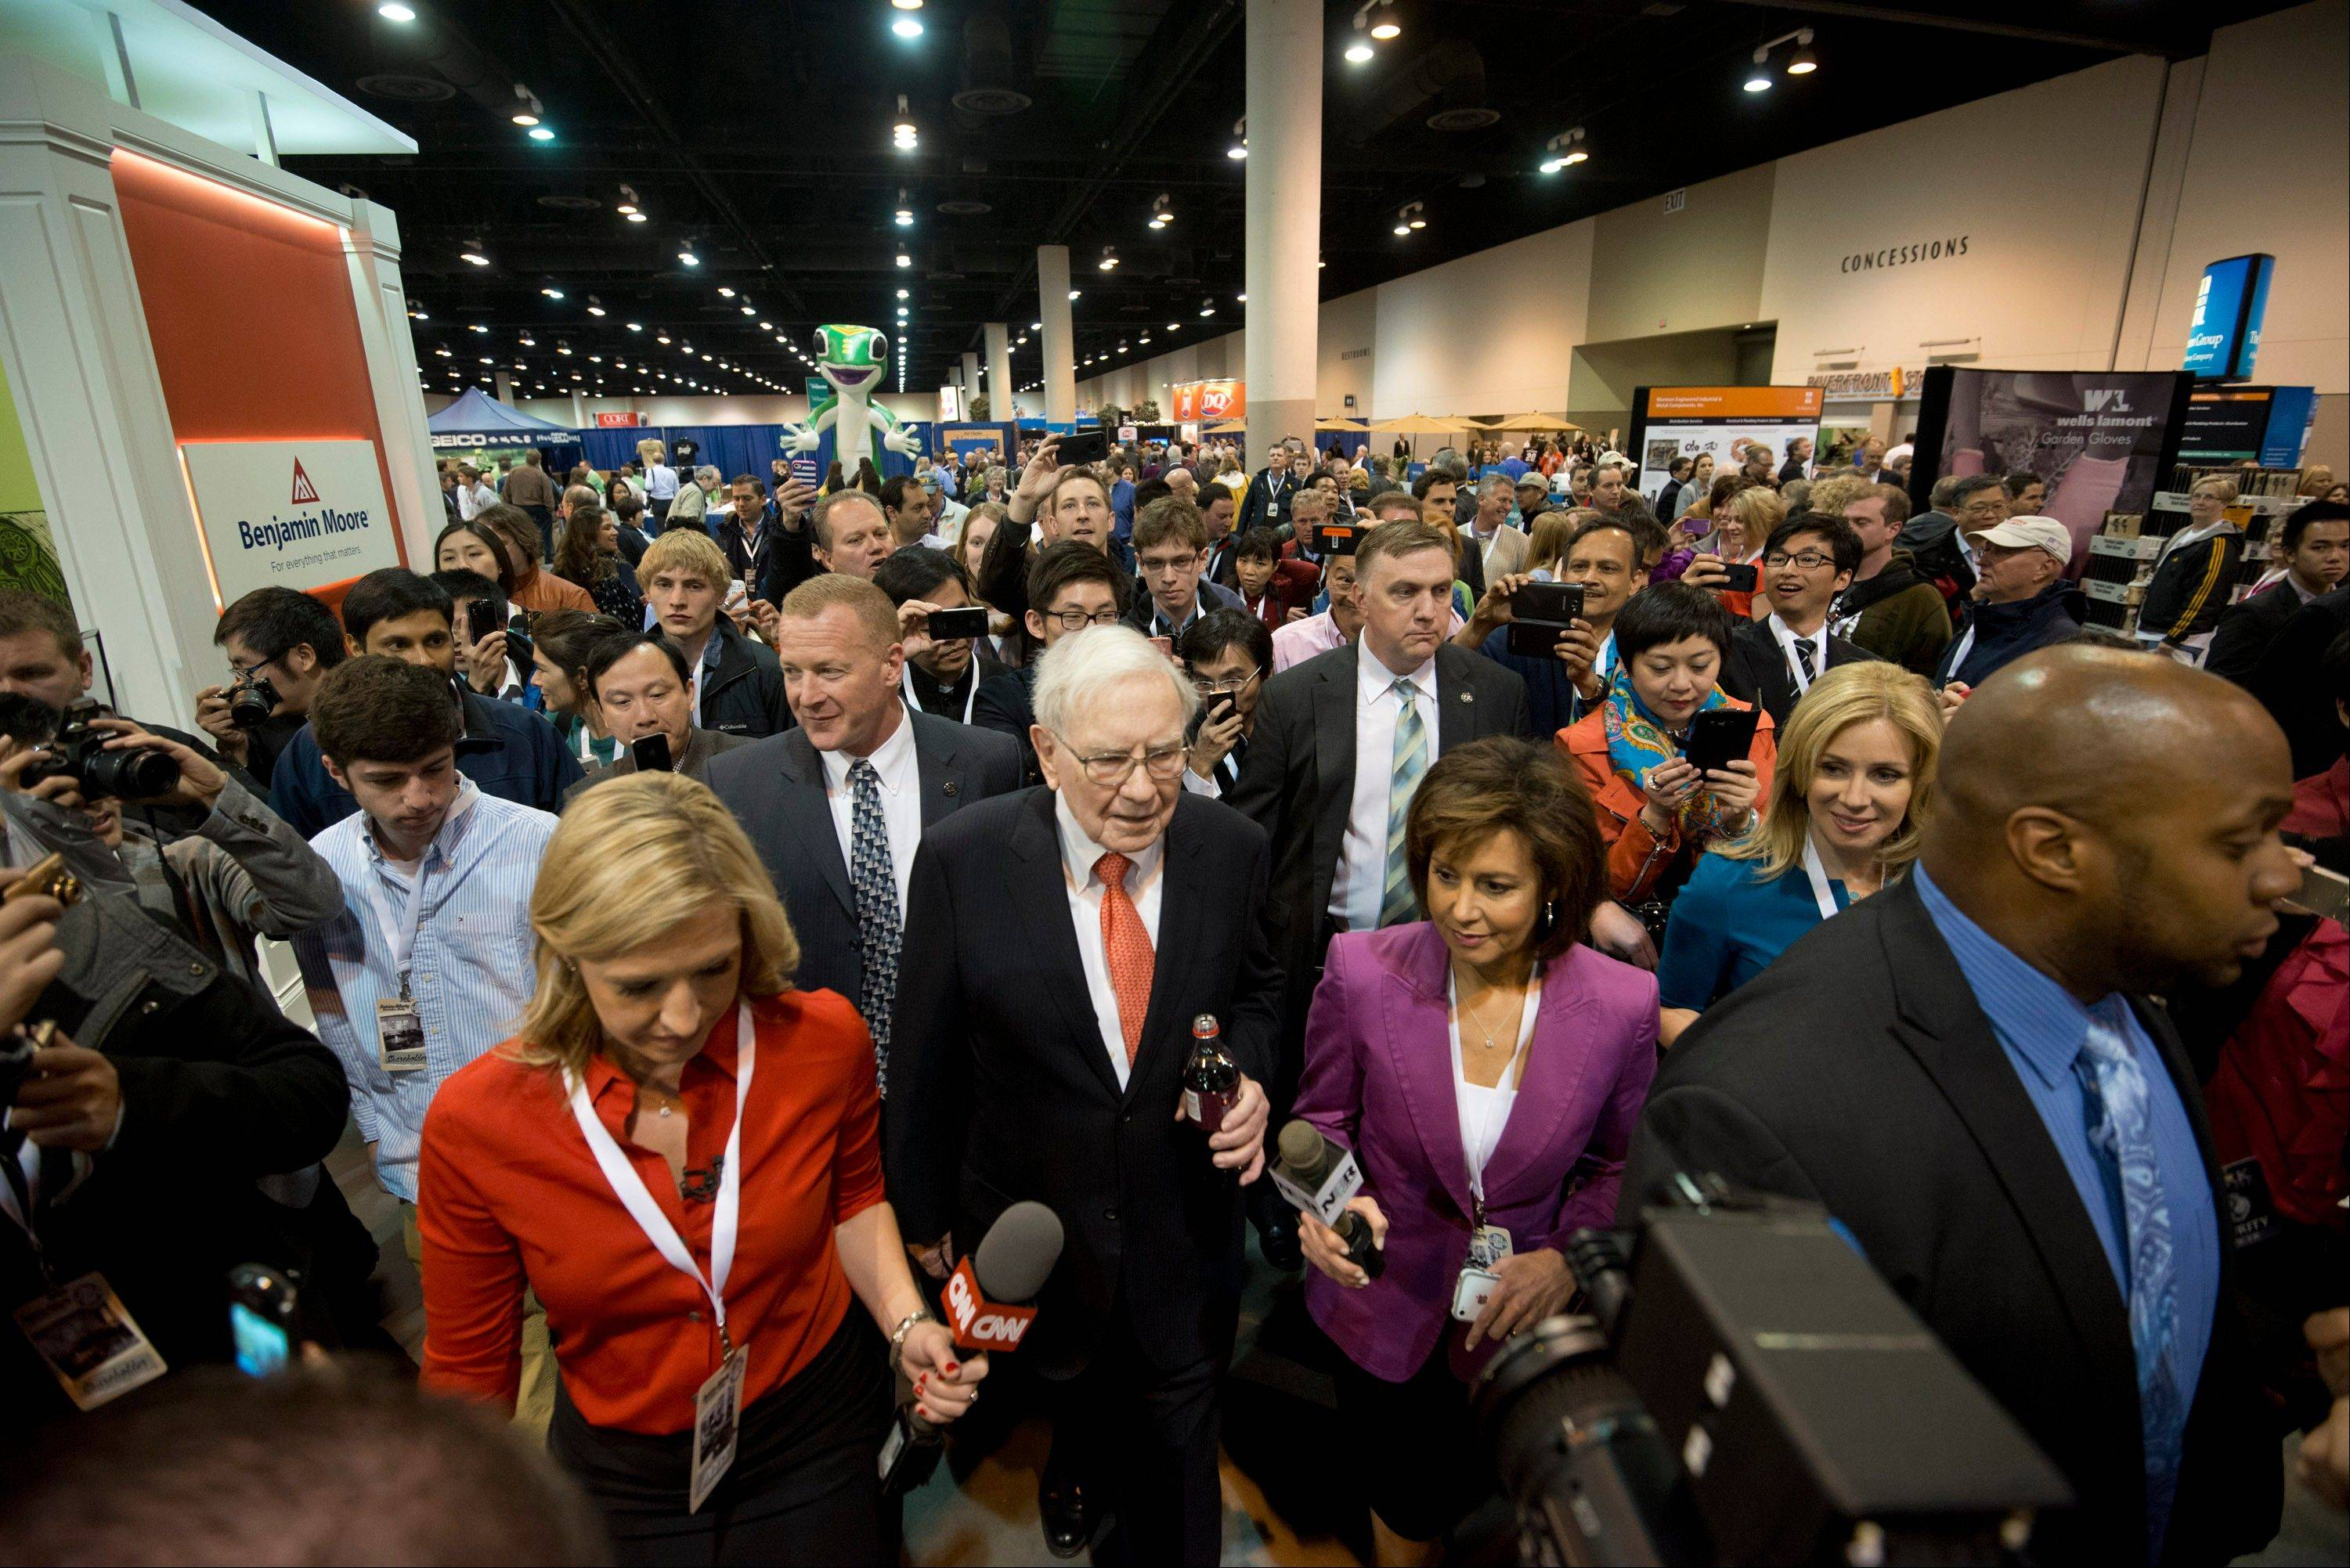 Warren Buffett, chairman and chief executive officer of Berkshire Hathaway Inc., tours the exhibition floor Saturday prior to the start of the Berkshire shareholders meeting in Omaha, Nebraska.